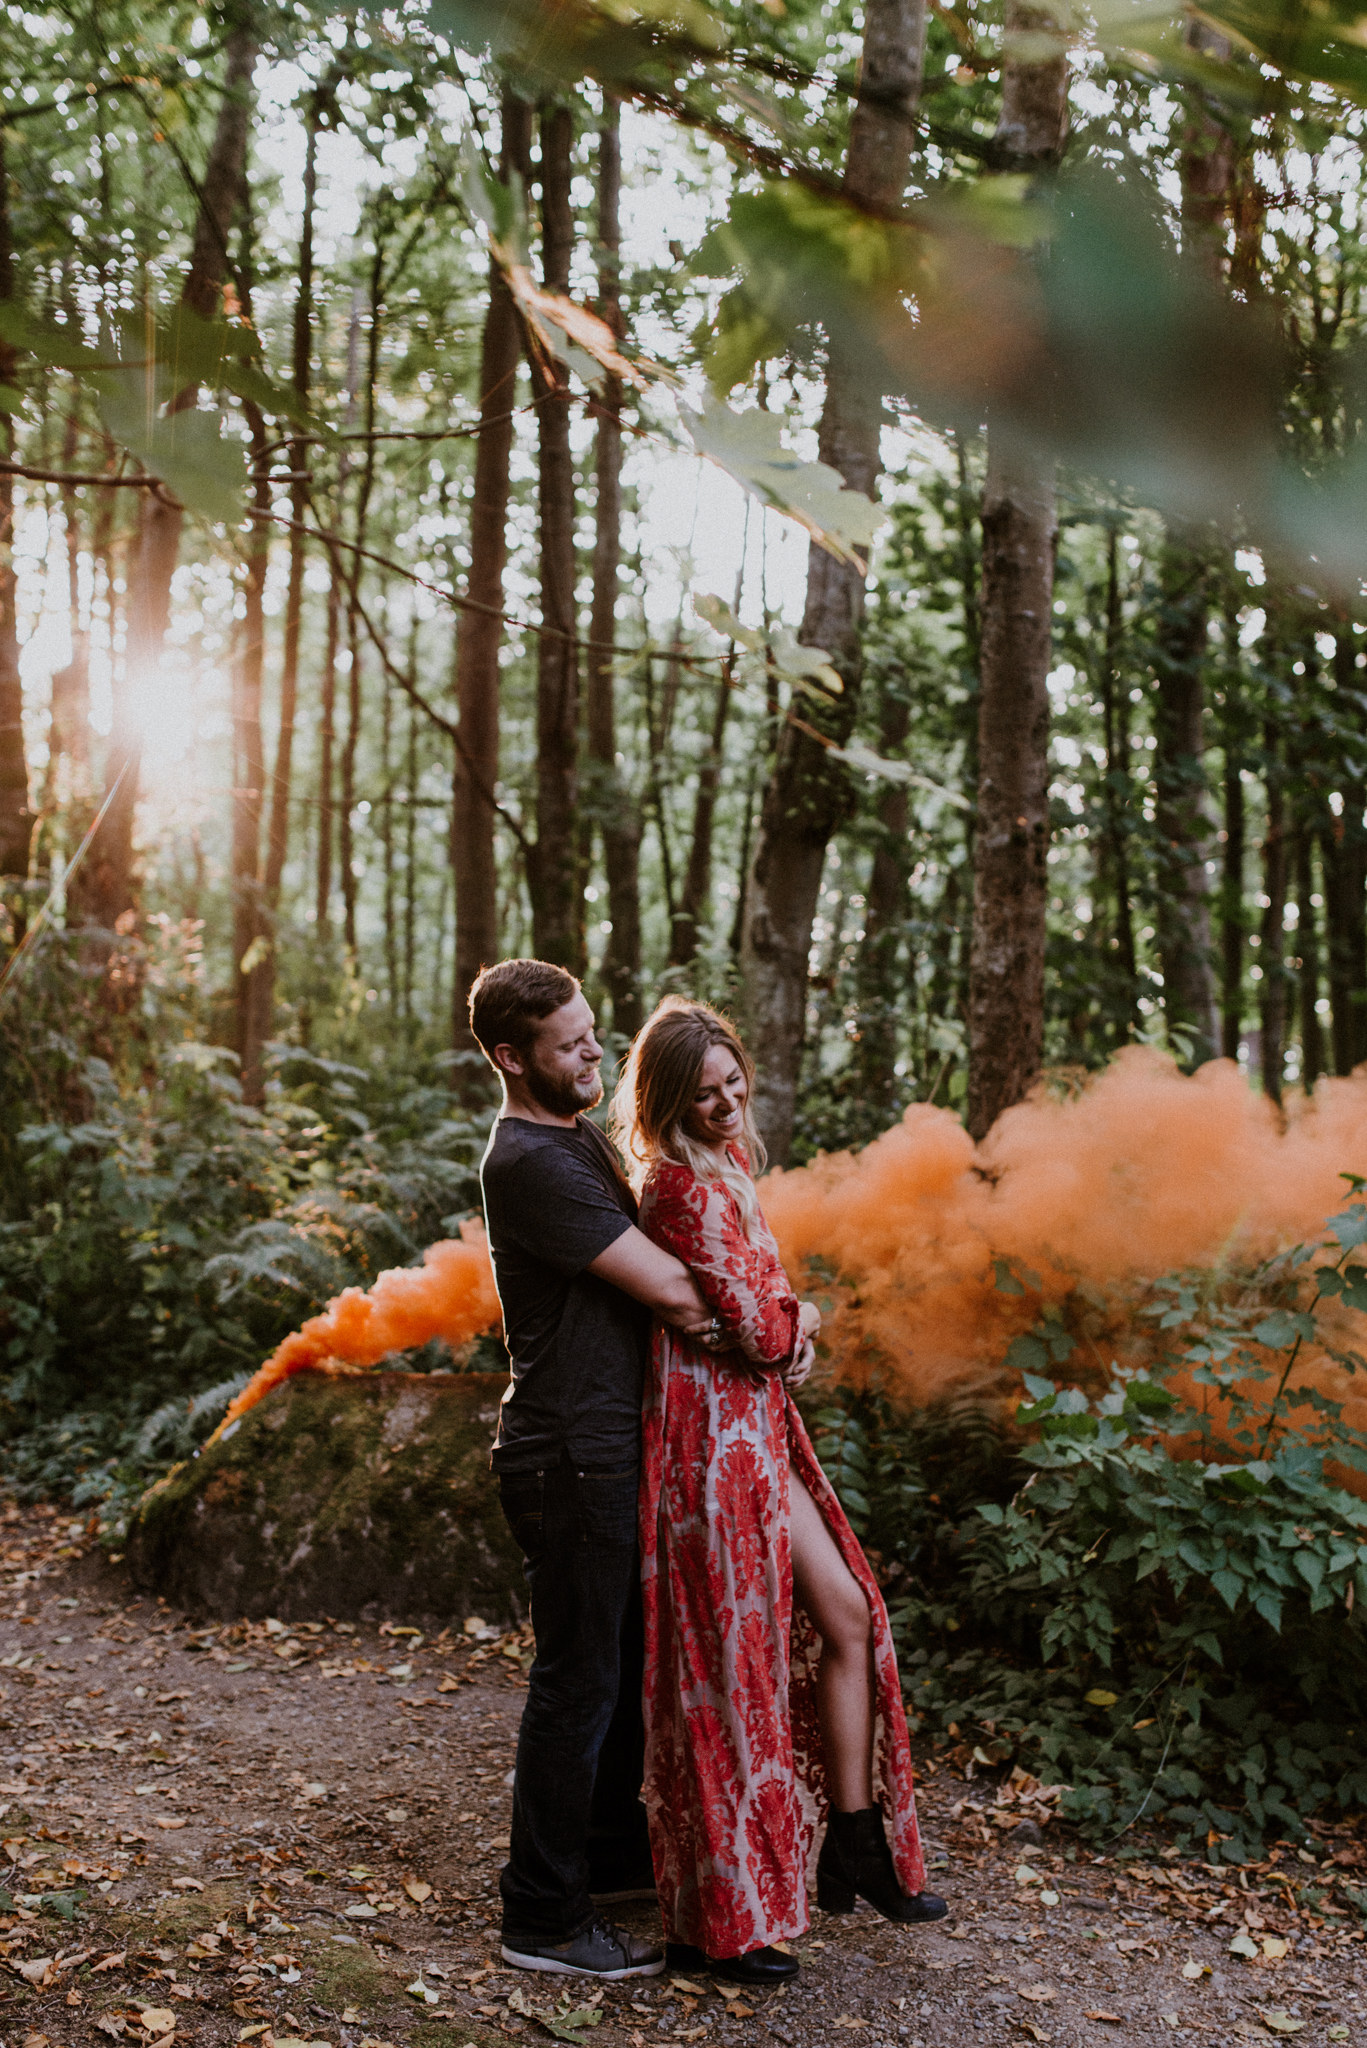 018_StacieCarrPhotography_vancouver-elopement-photographer-adventurous-engagement-smoke-bomb-beach.jpg